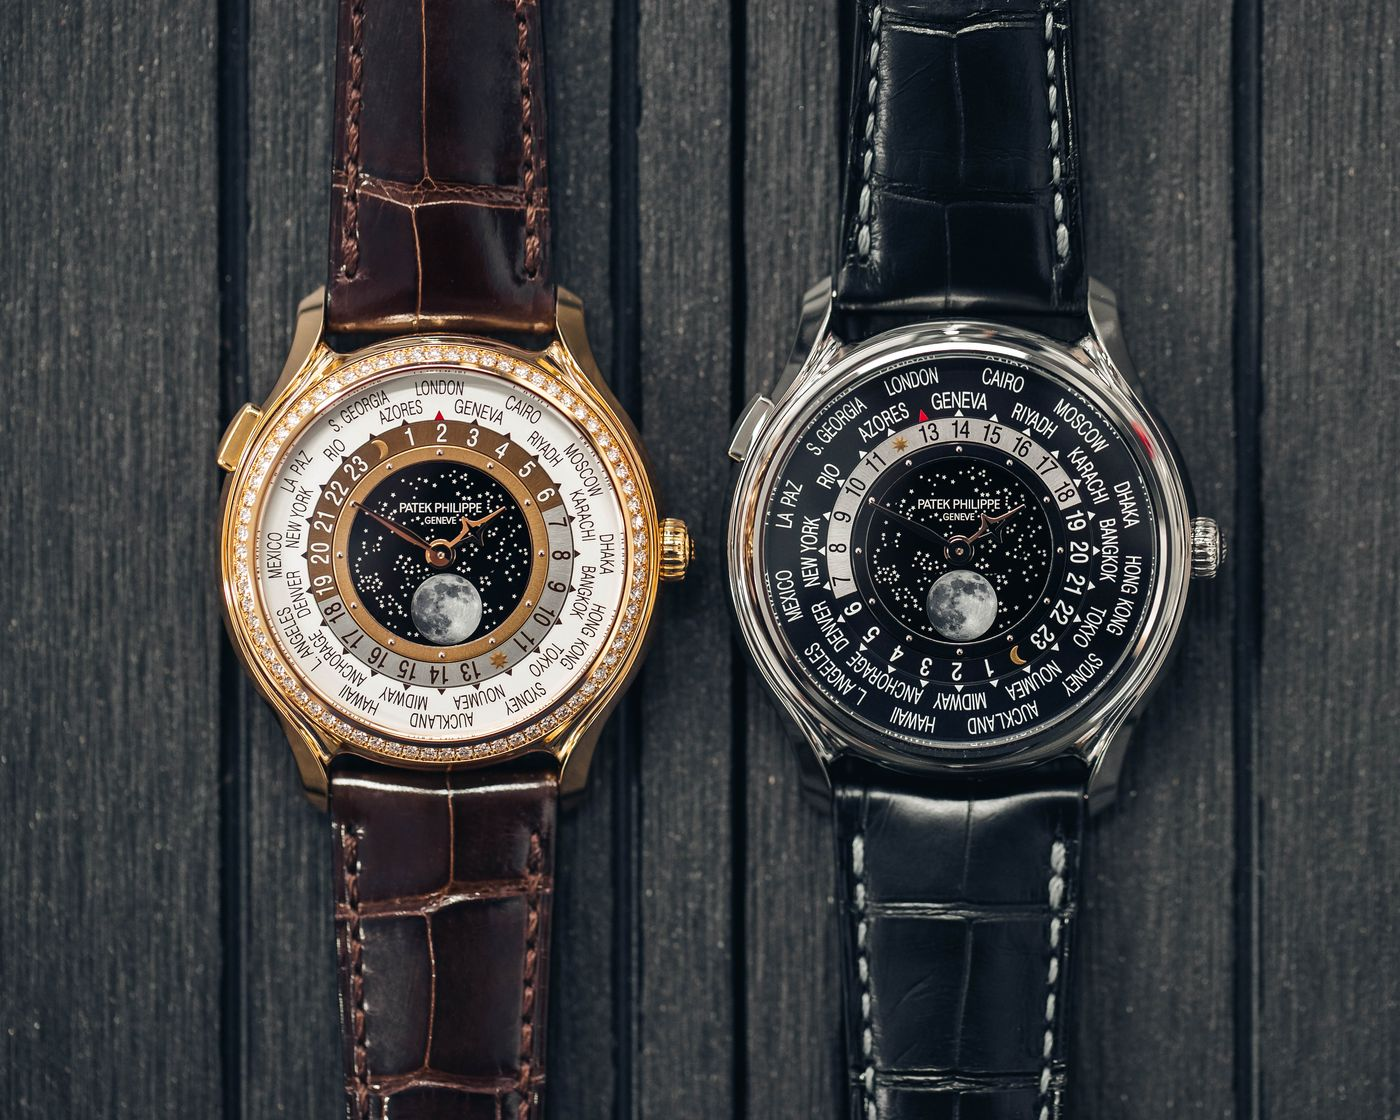 PHILLIPS Perpetual is proud to present a pair of limited edition Patek Philippe world timers among its latest arrivals. Made to commemorate the brand's 175th anniversary, the two watches are offered in like new condition and can be viewed in London at 30 Berkeley Square.